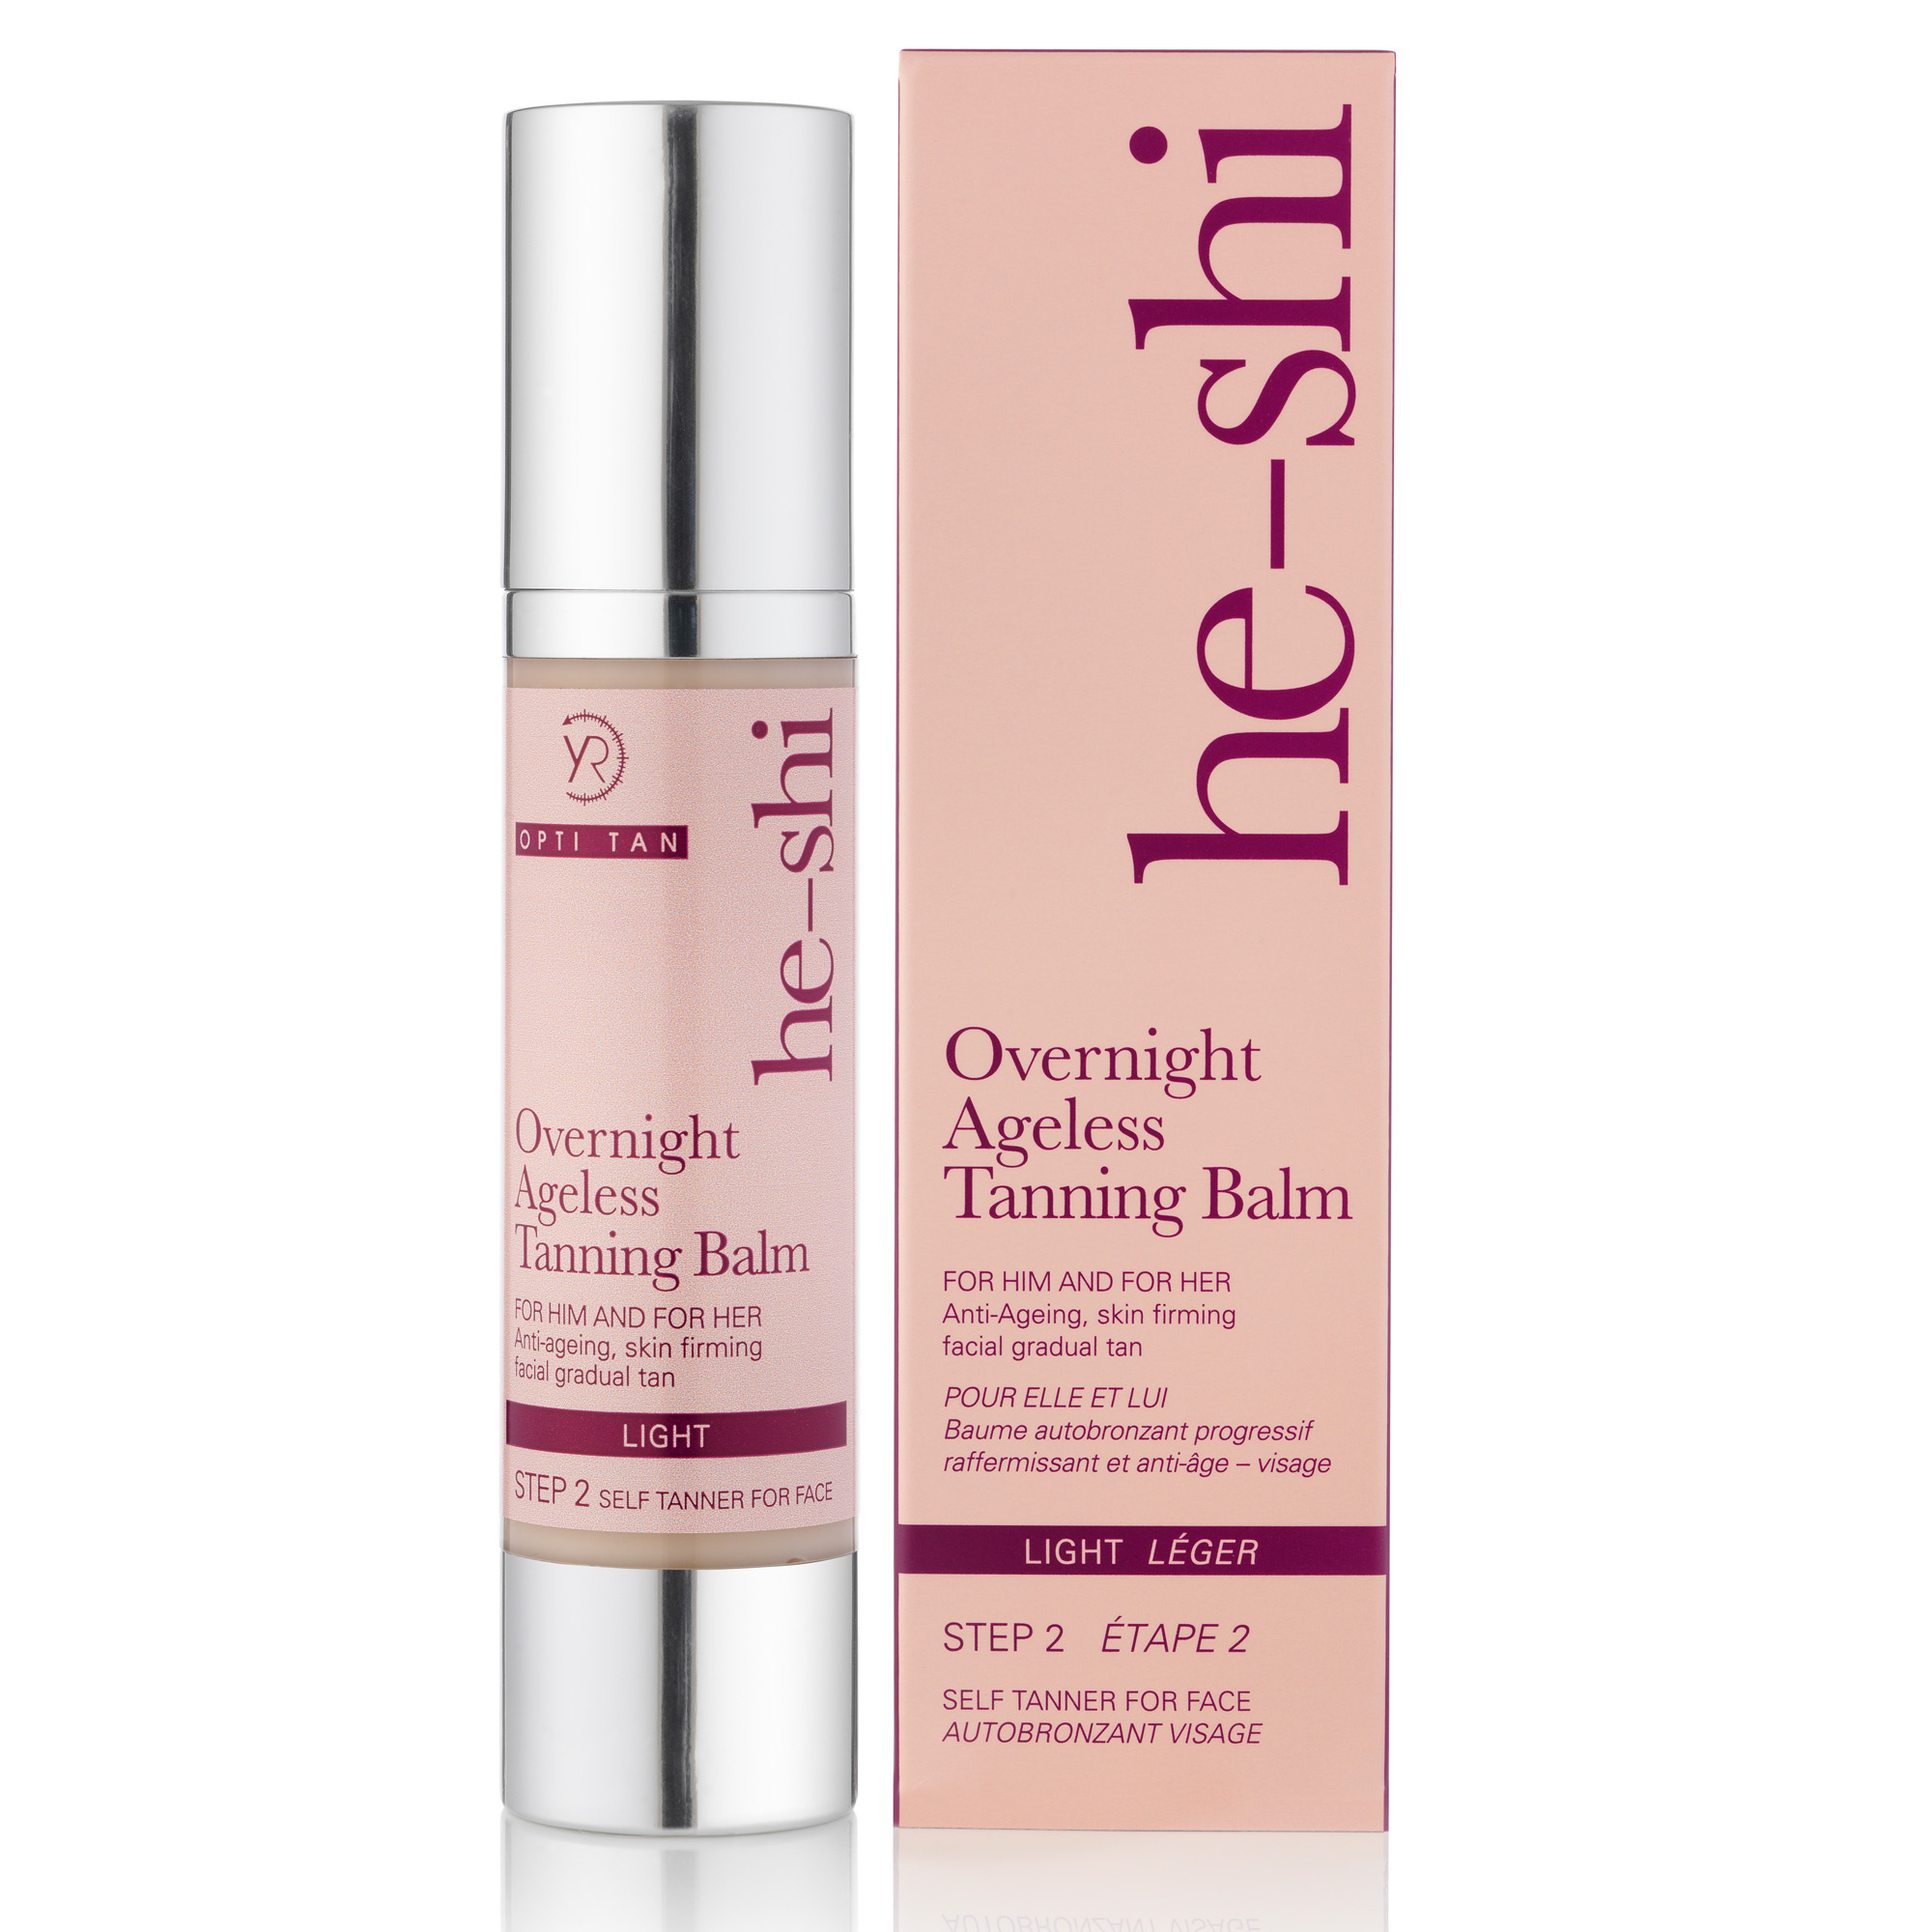 He-Shi Overnight Ageless Tanning Balm - Step 2. 50ml